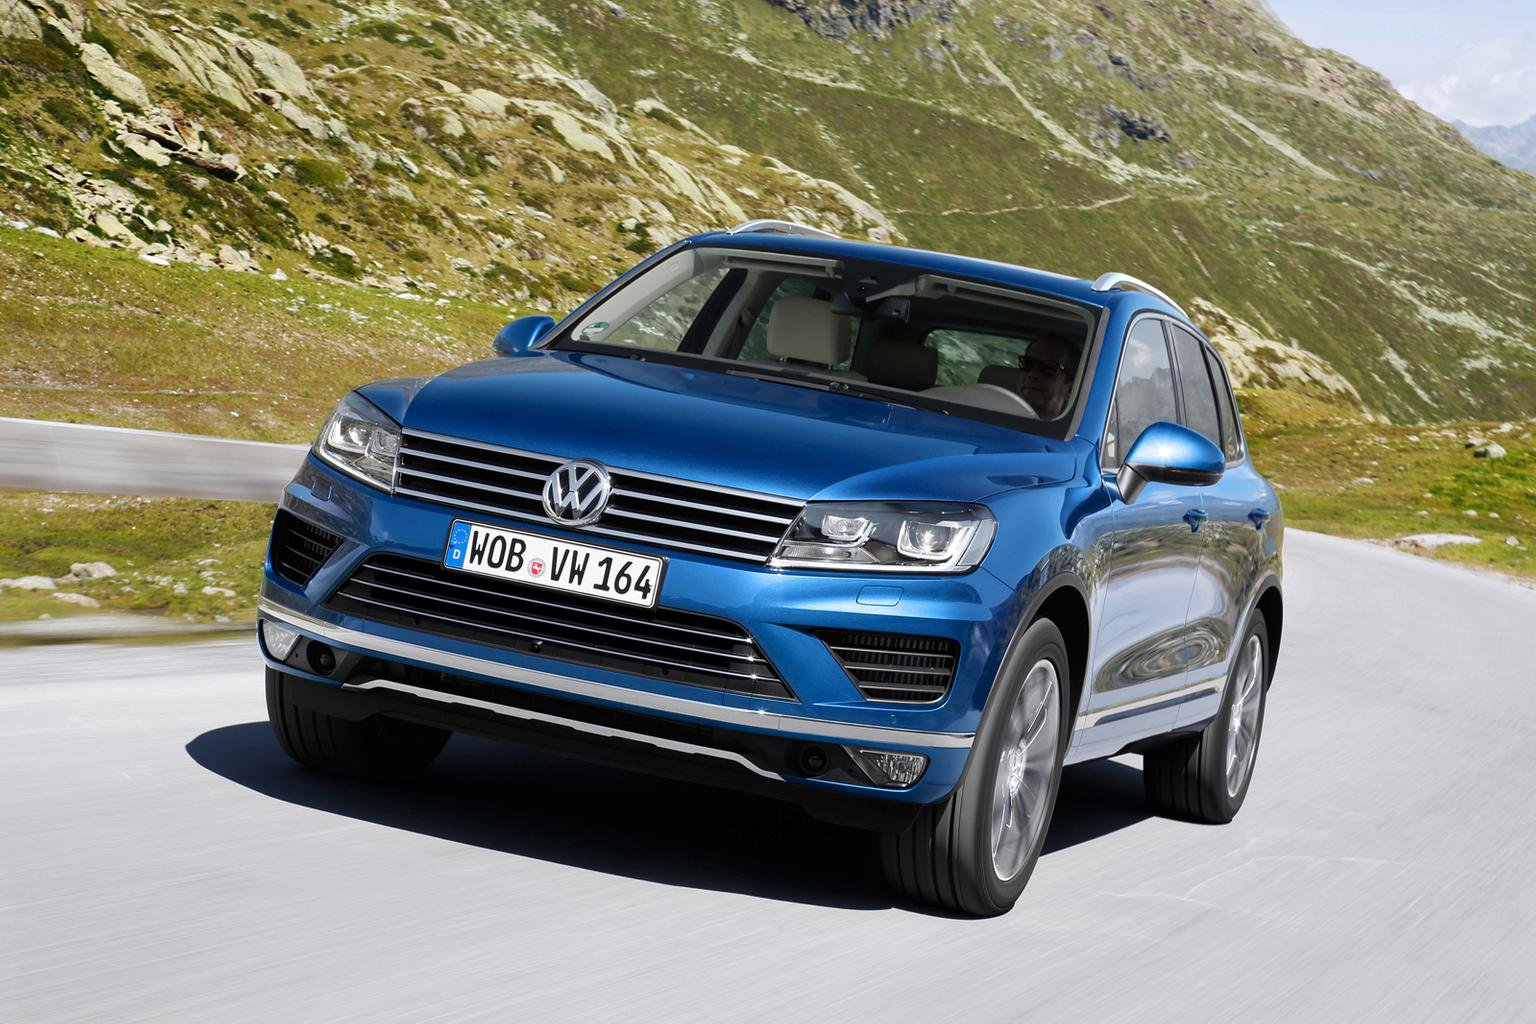 2017 Volkswagen Touareg Review